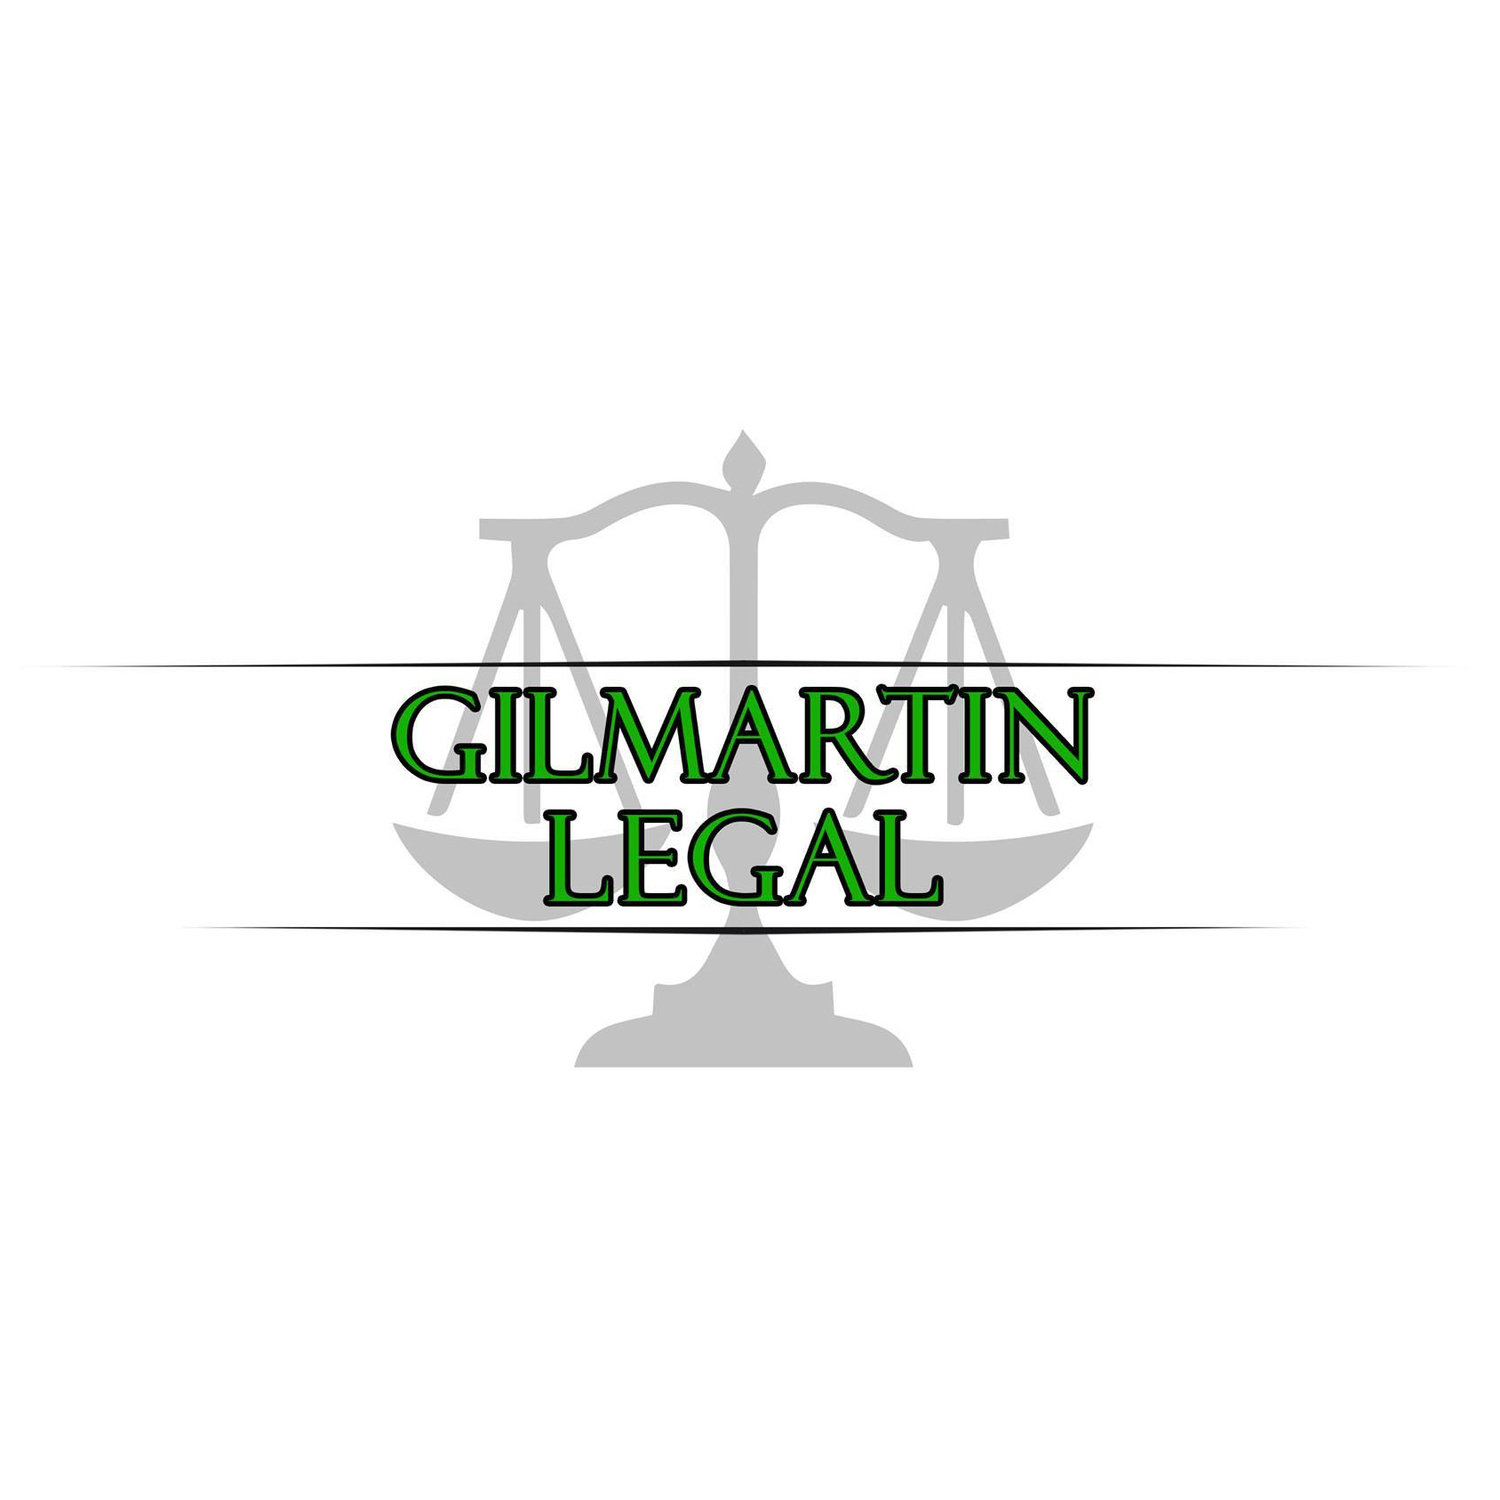 image of Gilmartin Legal